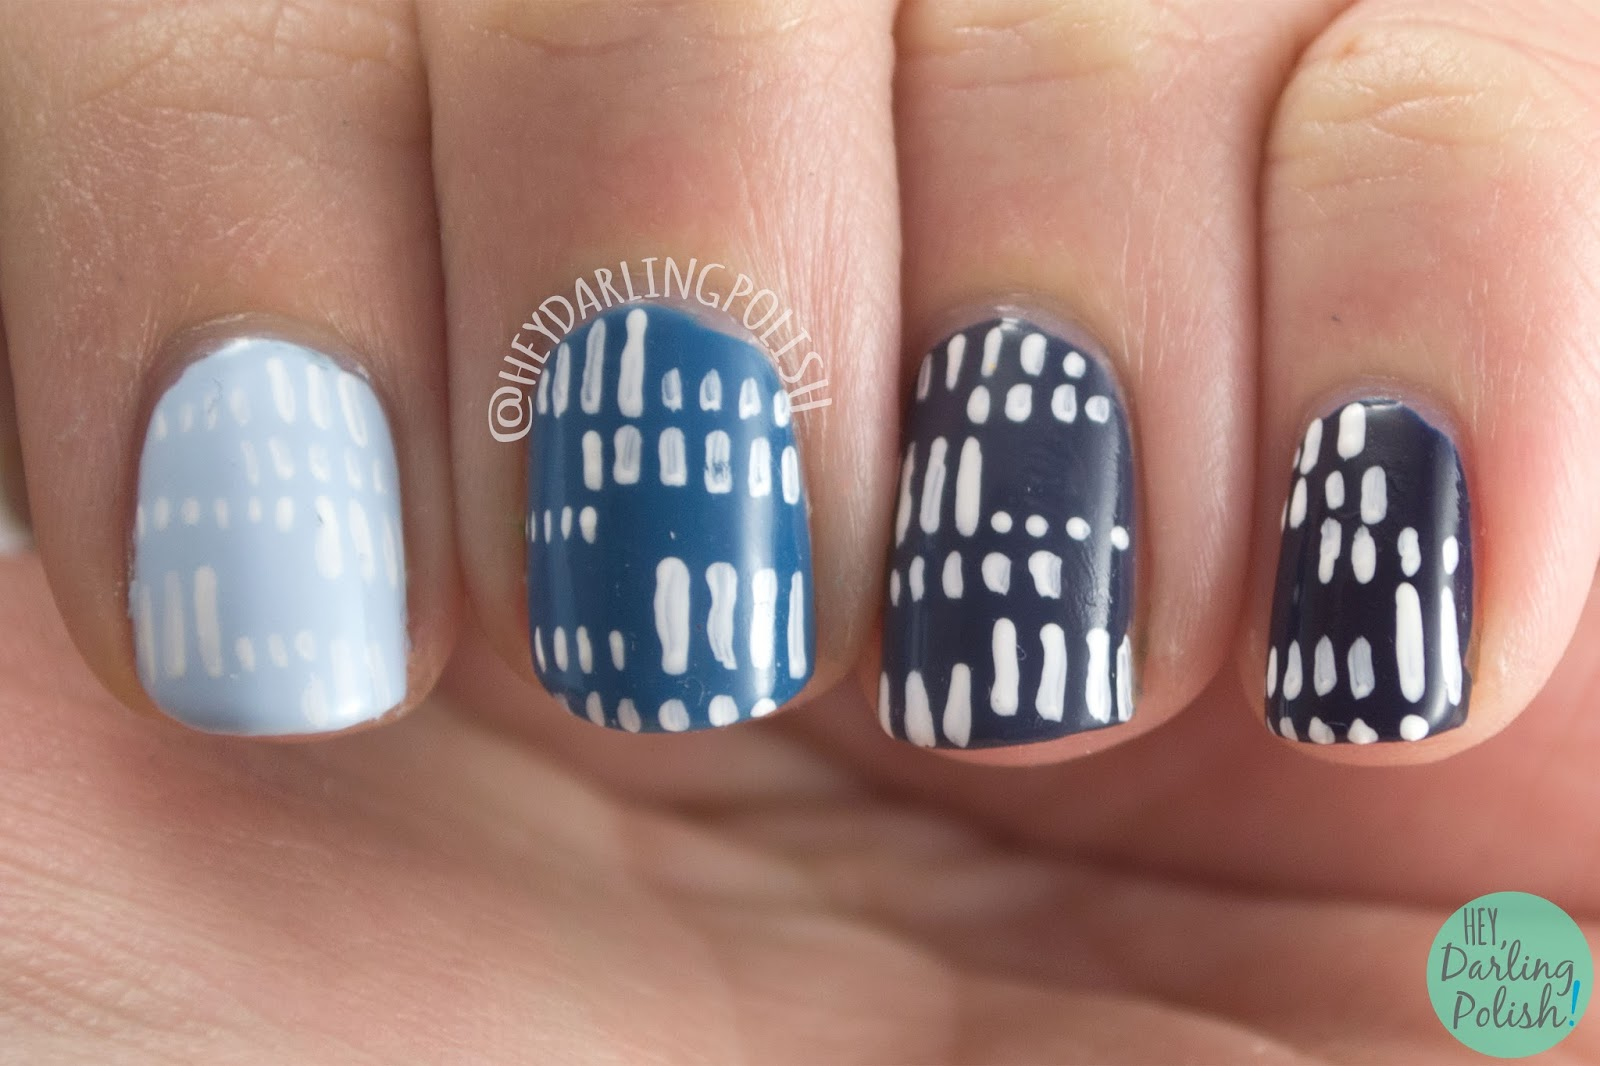 nails, nail art, hey darling polish, ombre, blue, nail linkup, pattern, lines, dashes,